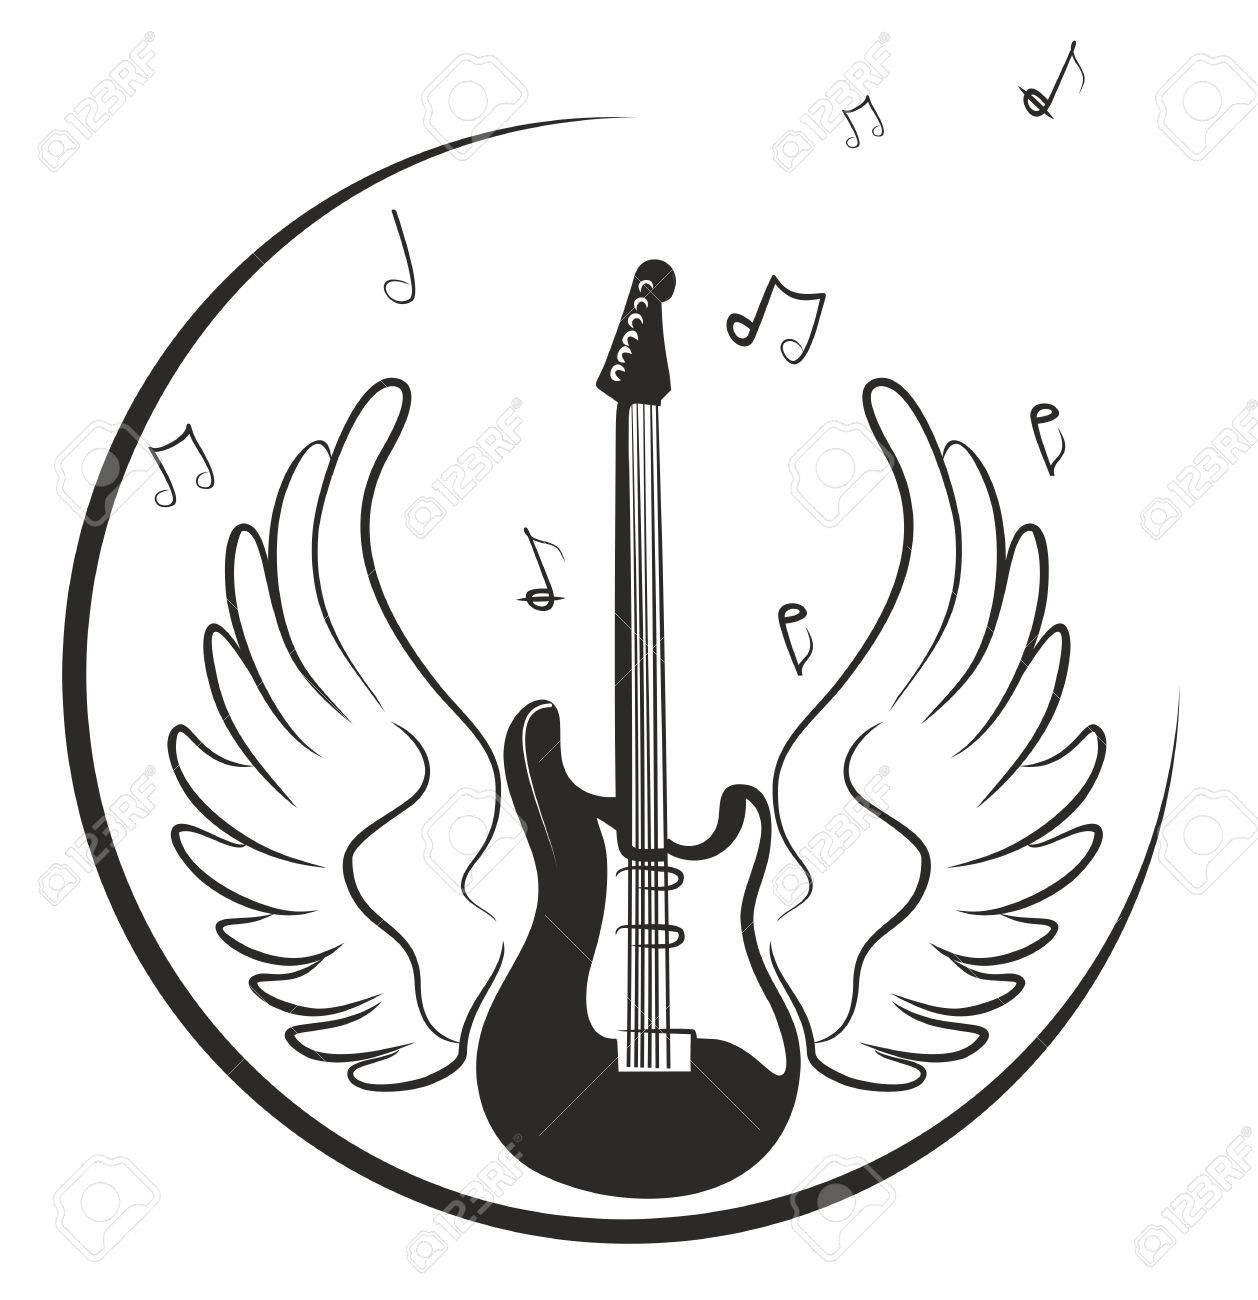 Electric Guitar Drawing With Wings And Notes Royalty Free Cliparts Vectors And Stock Illustration Image 51441055